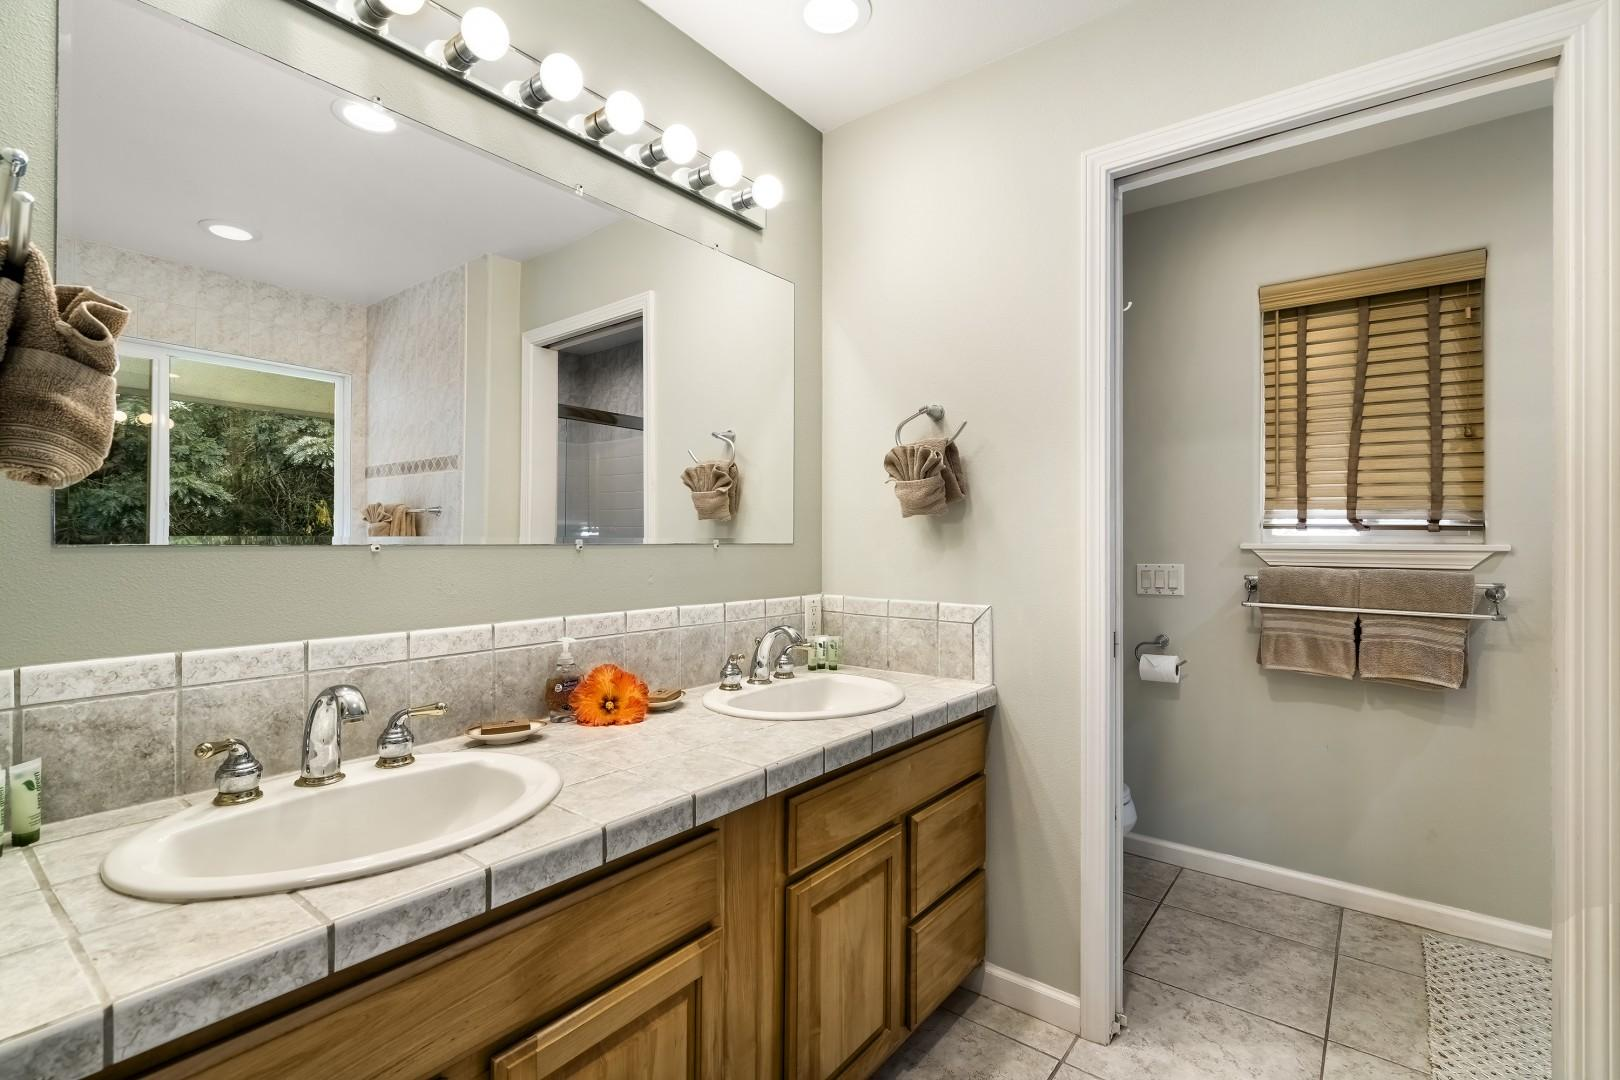 Spacious master bathroom with dual vanities